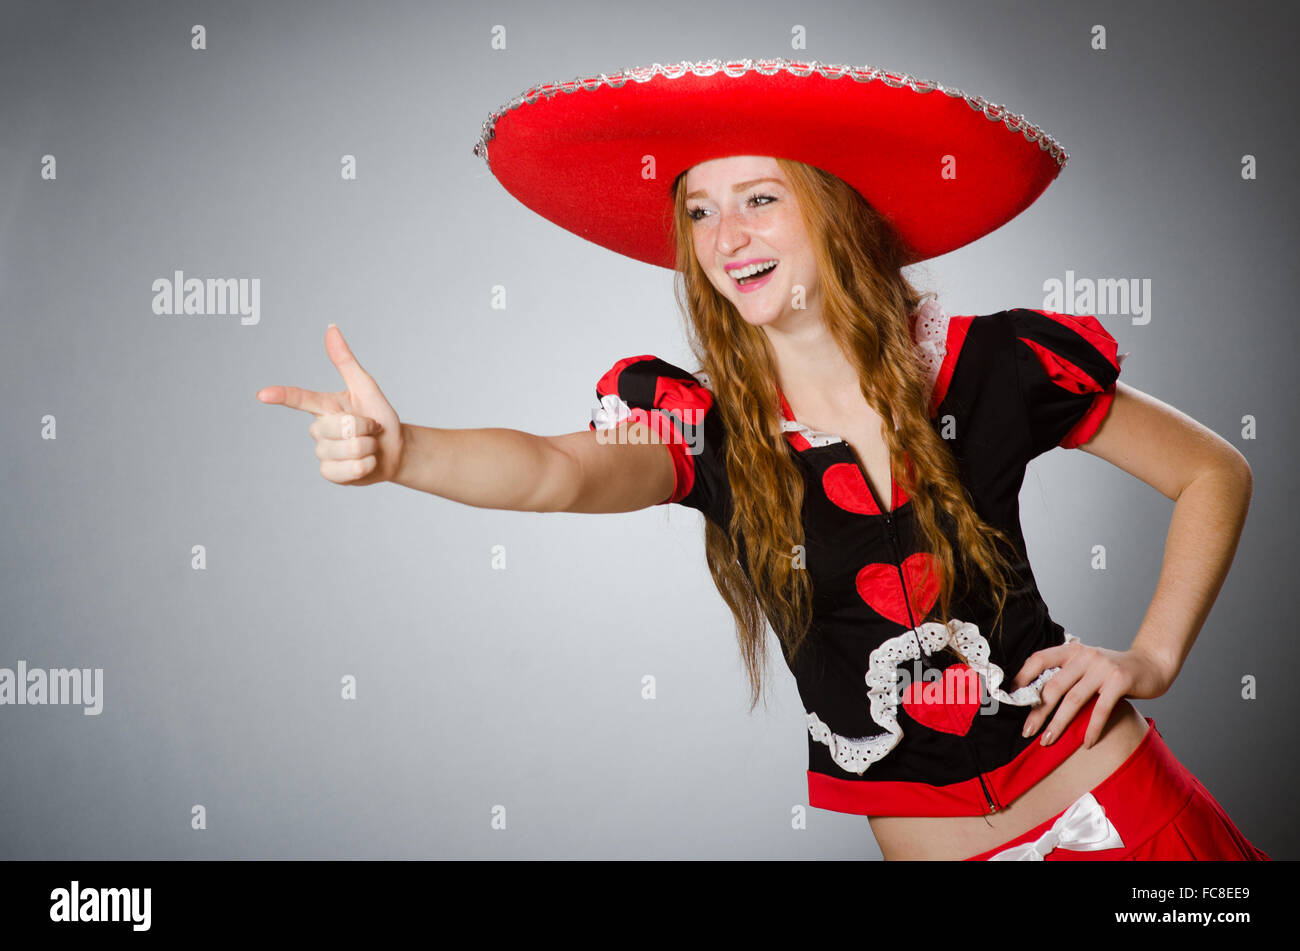 Mexican woman wearing sombrero hat Stock Photo  93614705 - Alamy 23bb5969ffb